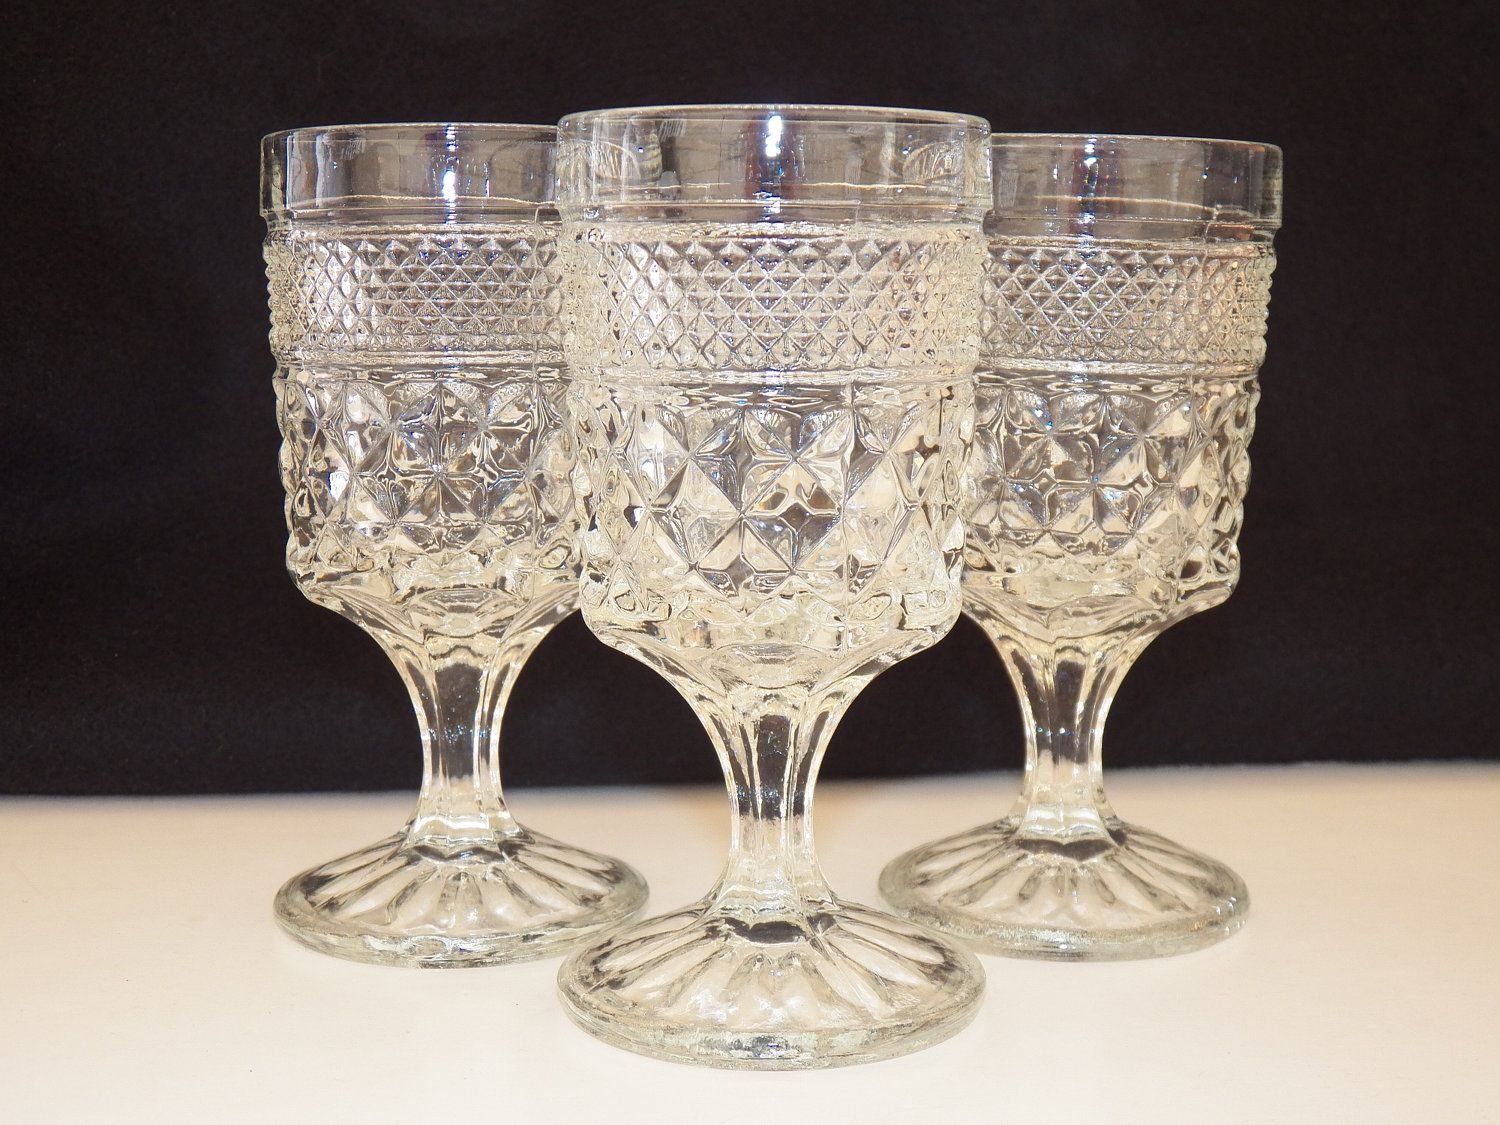 Clear glass plates for crafts - Vintage Glassware Anchor Hocking Wexford Set Of Three Goblets Glass Bar Glassware Stemware Barware Housewares Free Shipping To Usa